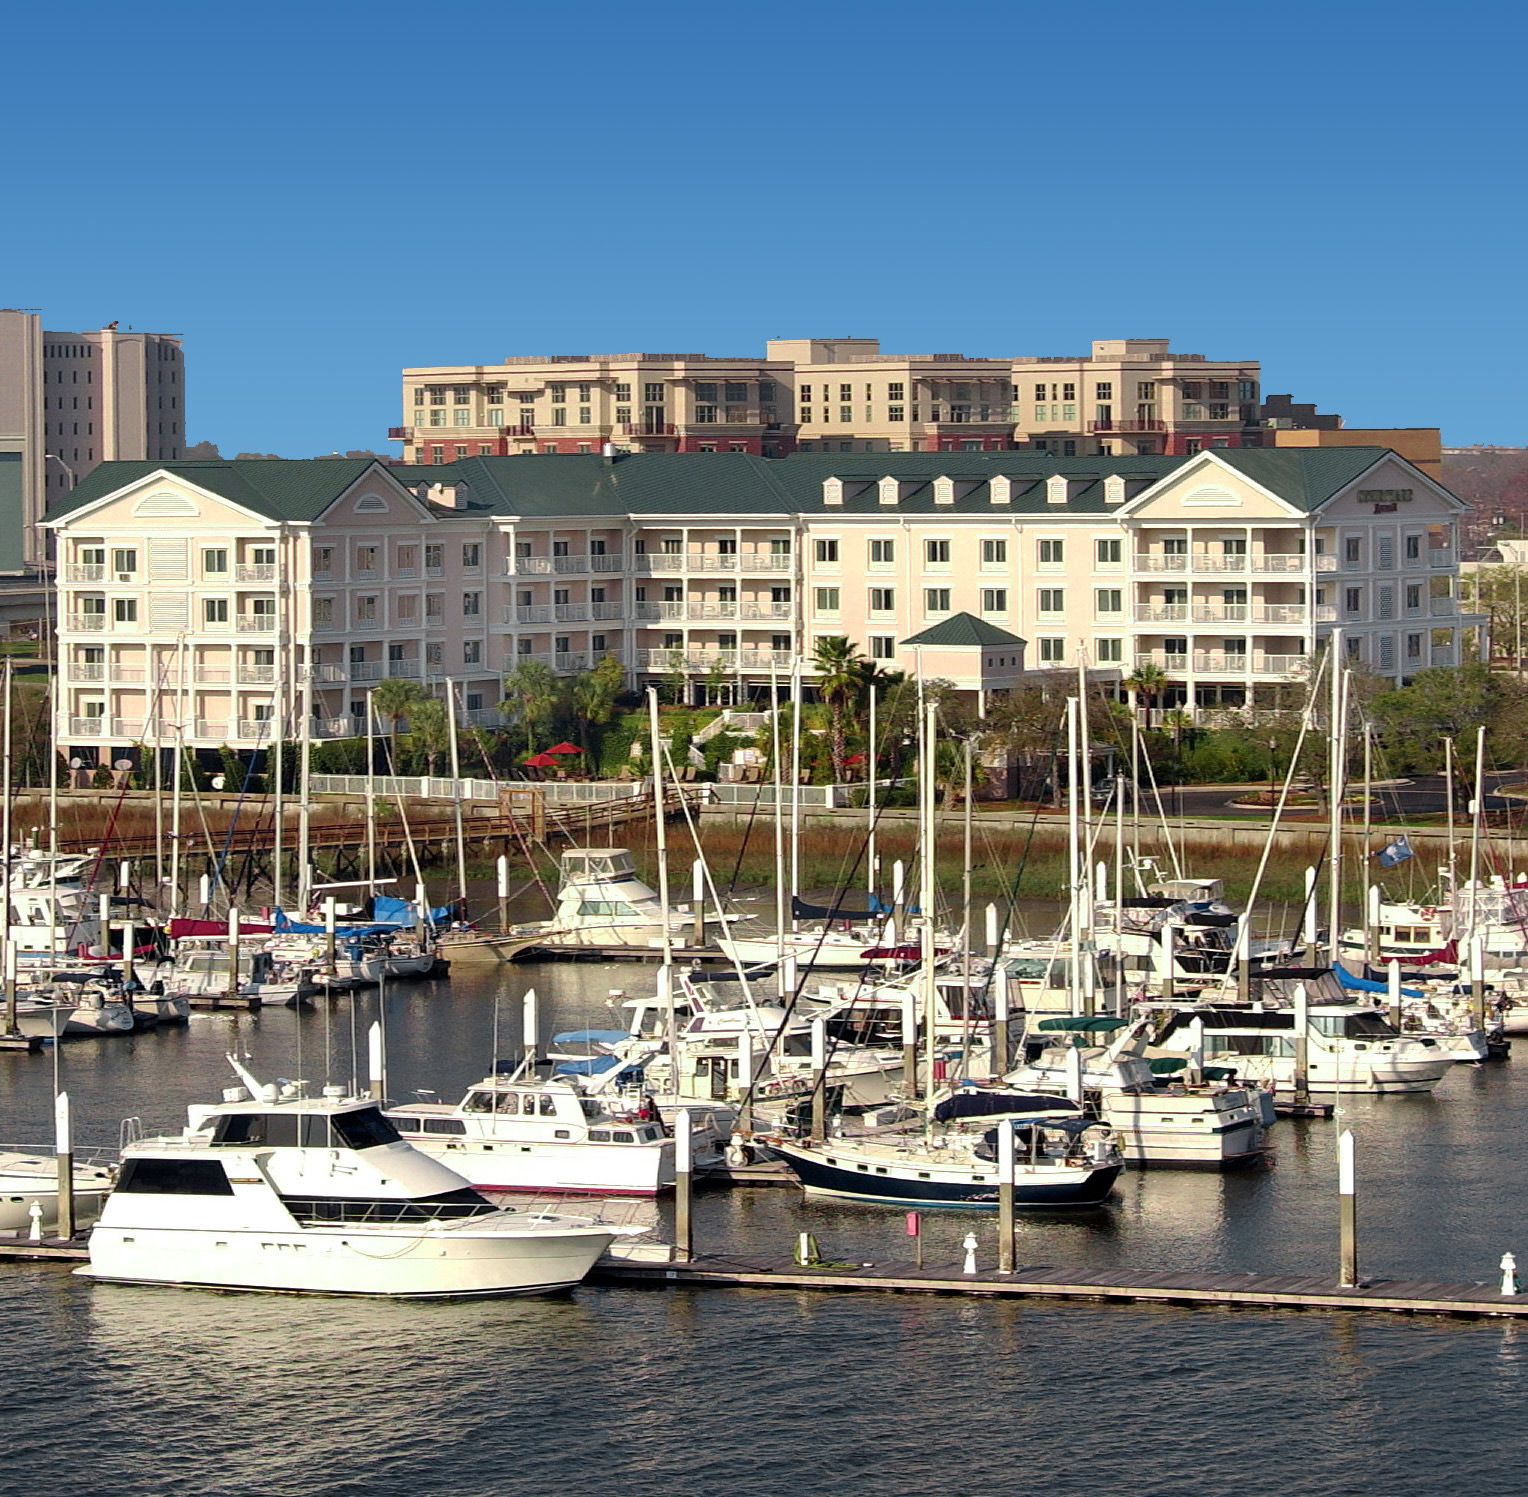 Experience Luxury And Southern Hospitality At Courtyard Charleston Waterfront Hotel Located Minutes From The Heart